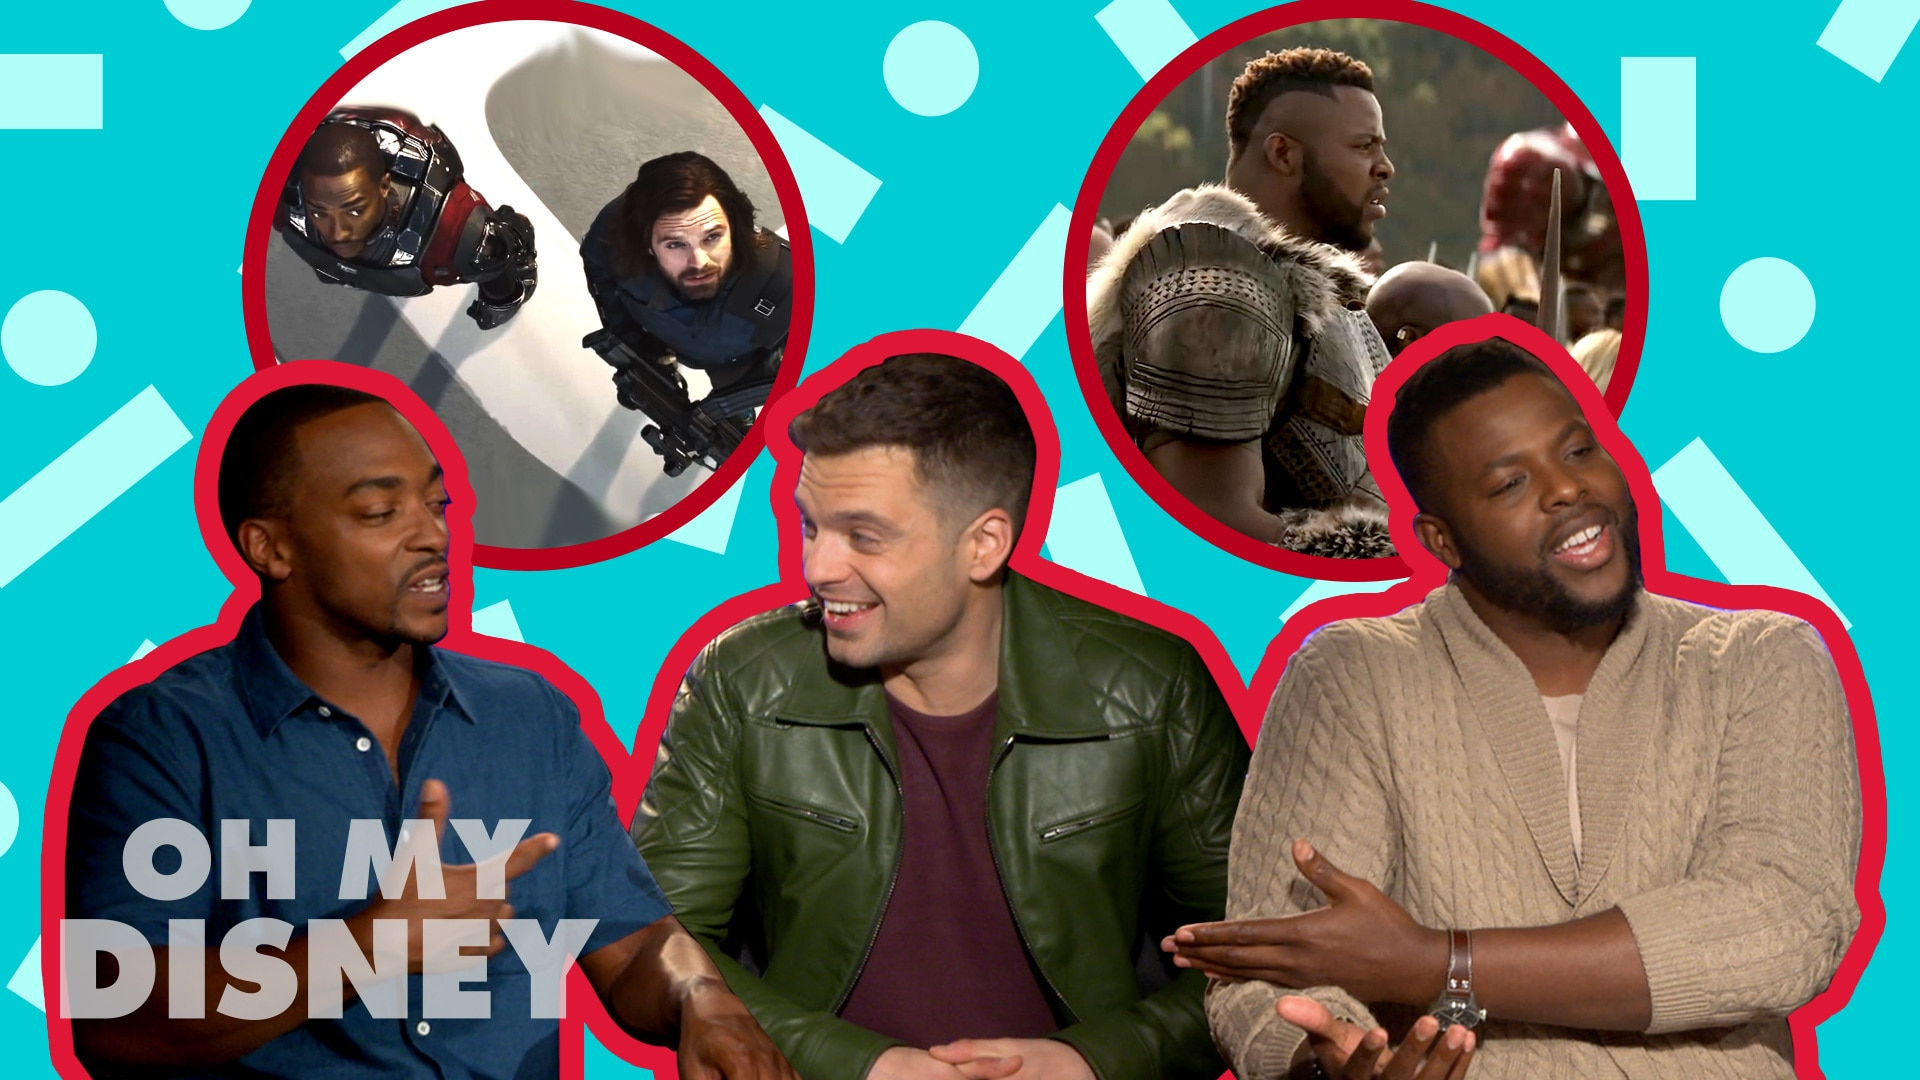 Winston Duke, Anthony Mackie, and Sebastian Stan Tell All | Oh My Disney Show by Oh My Disney